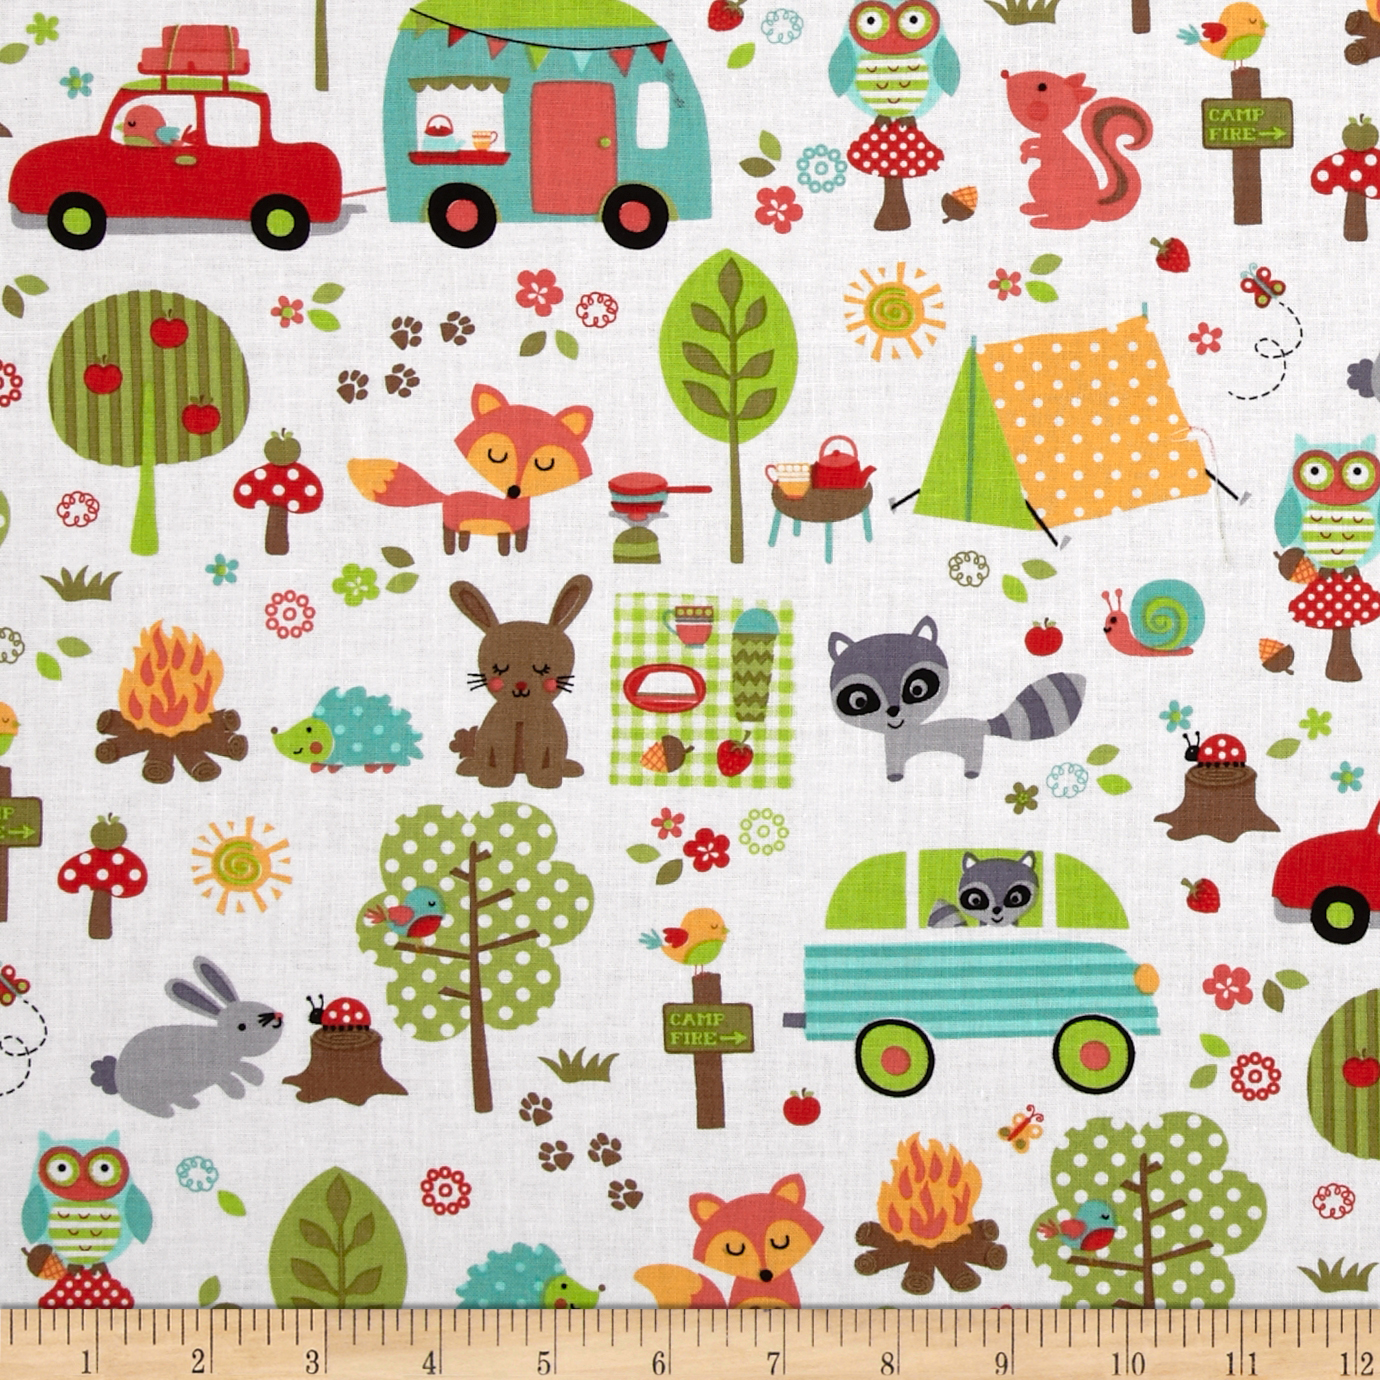 Hobby Lobby Home Decor Fabric